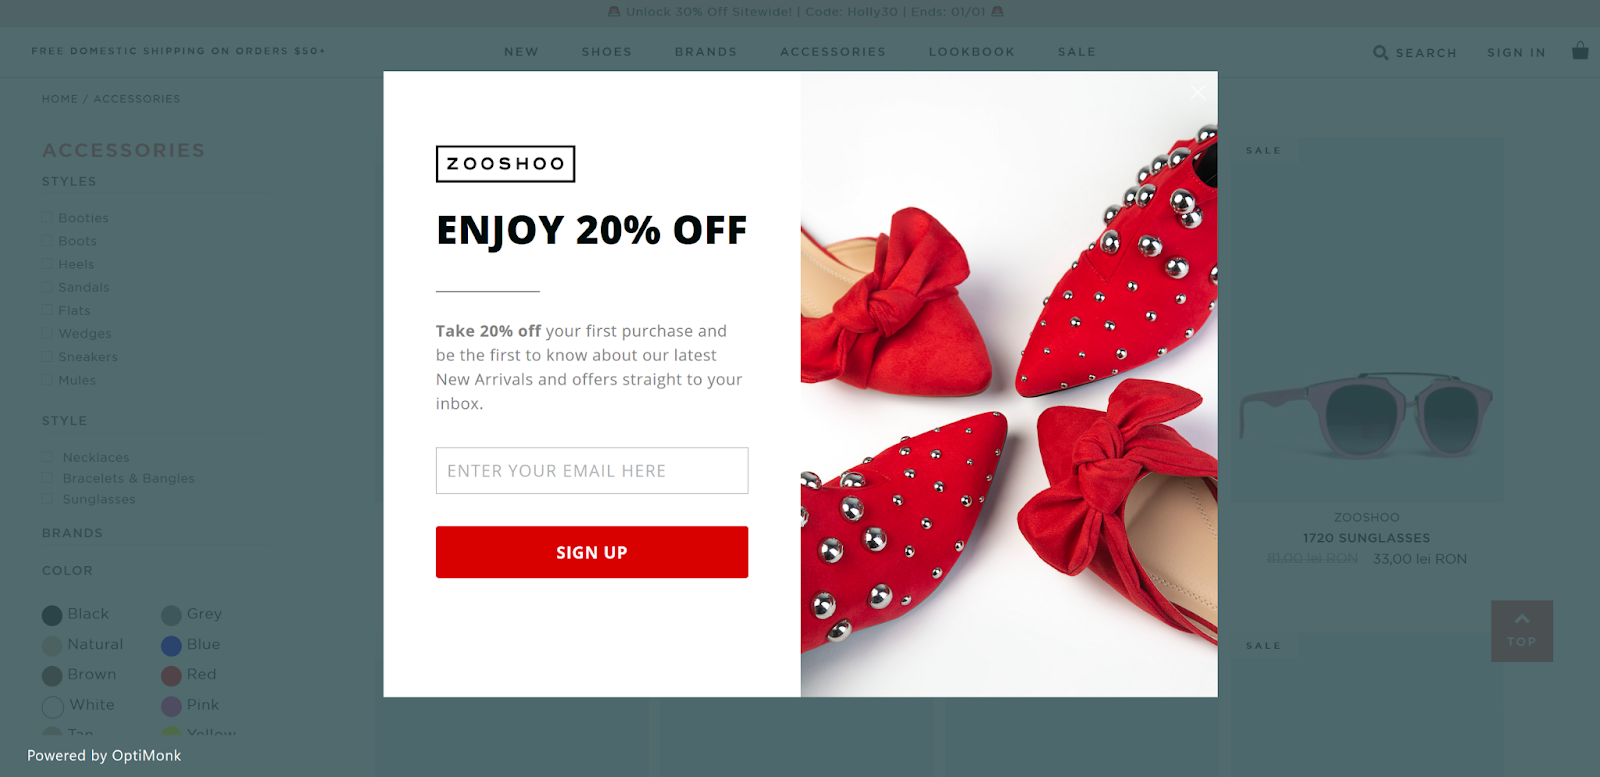 Enticing discounts in exchange for newsletter sign-ups